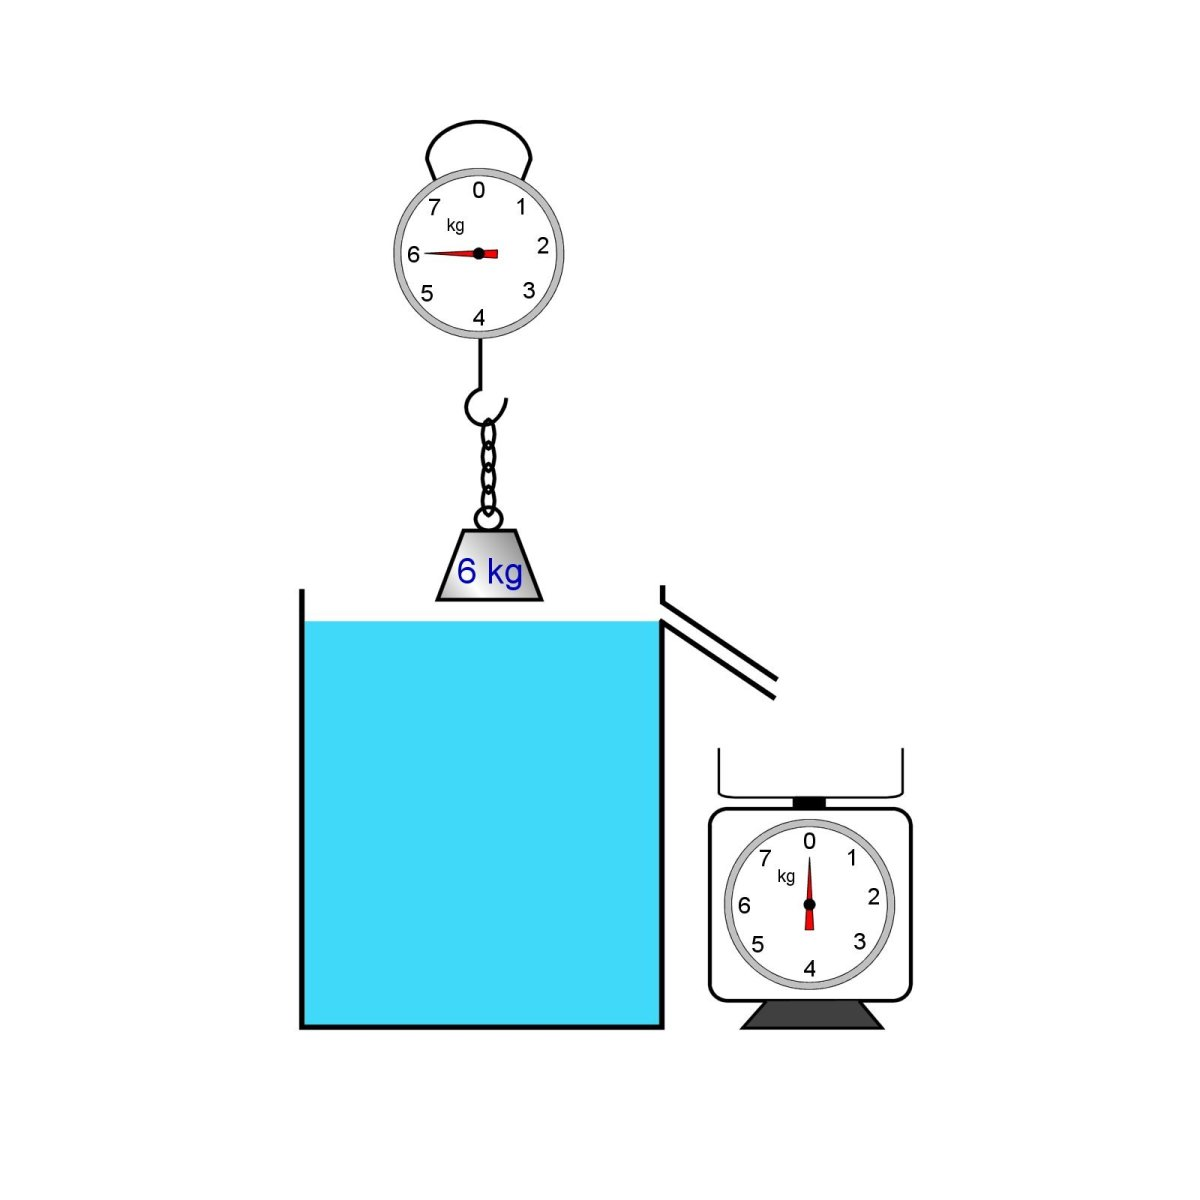 Experiment to investigate the principle of Archimedes.